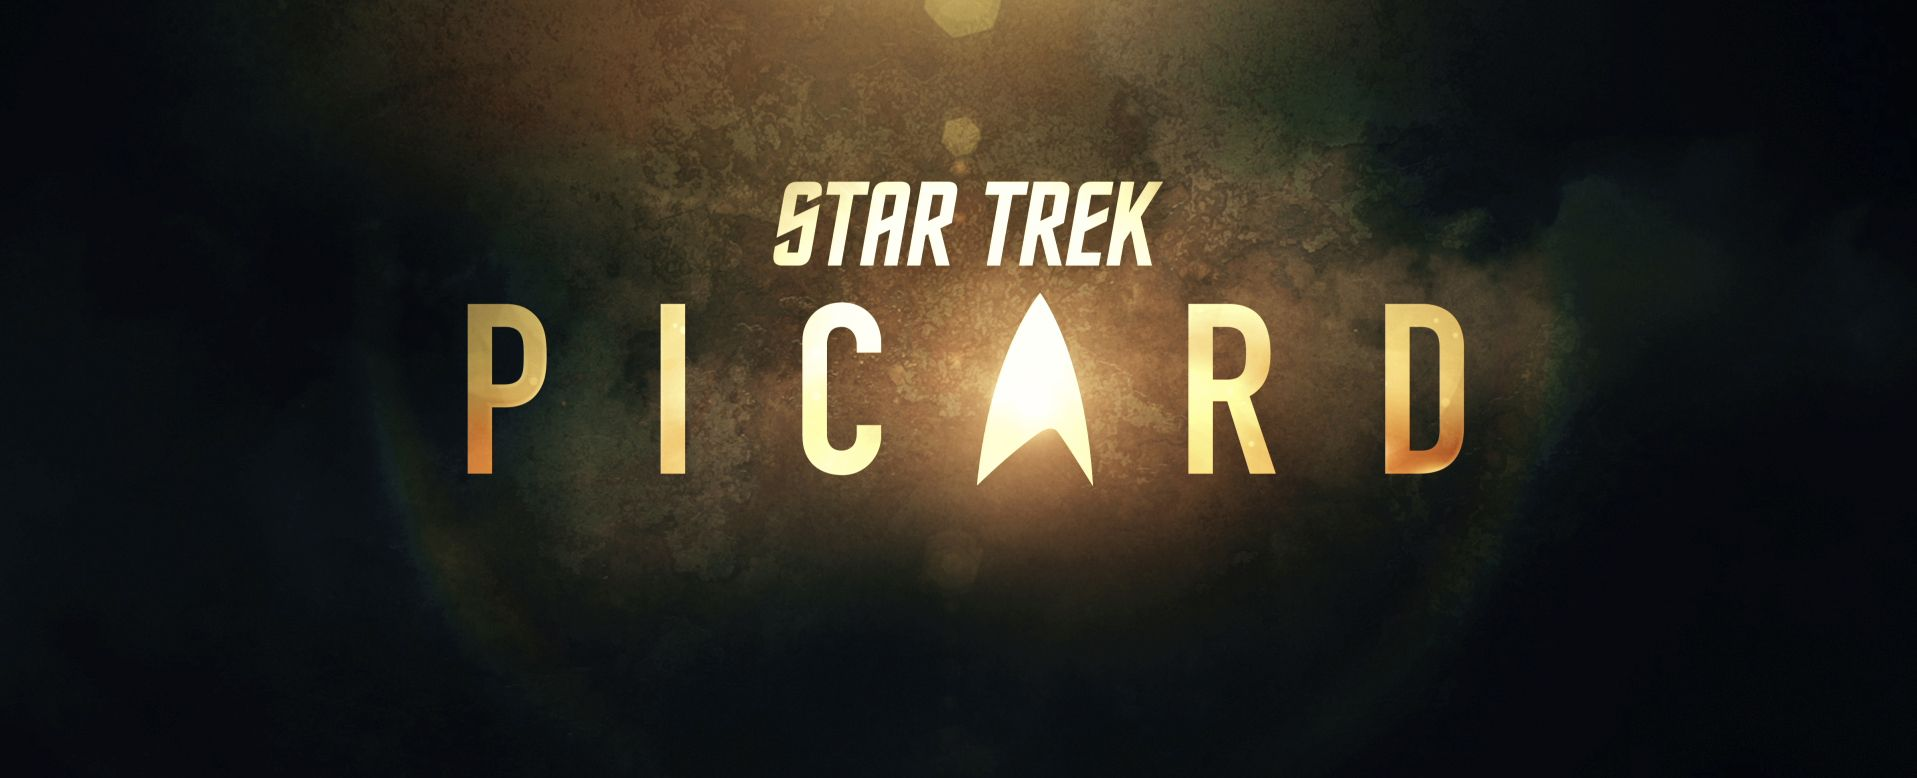 Star Trek Picard Series Gets Official Title And Logo Collider